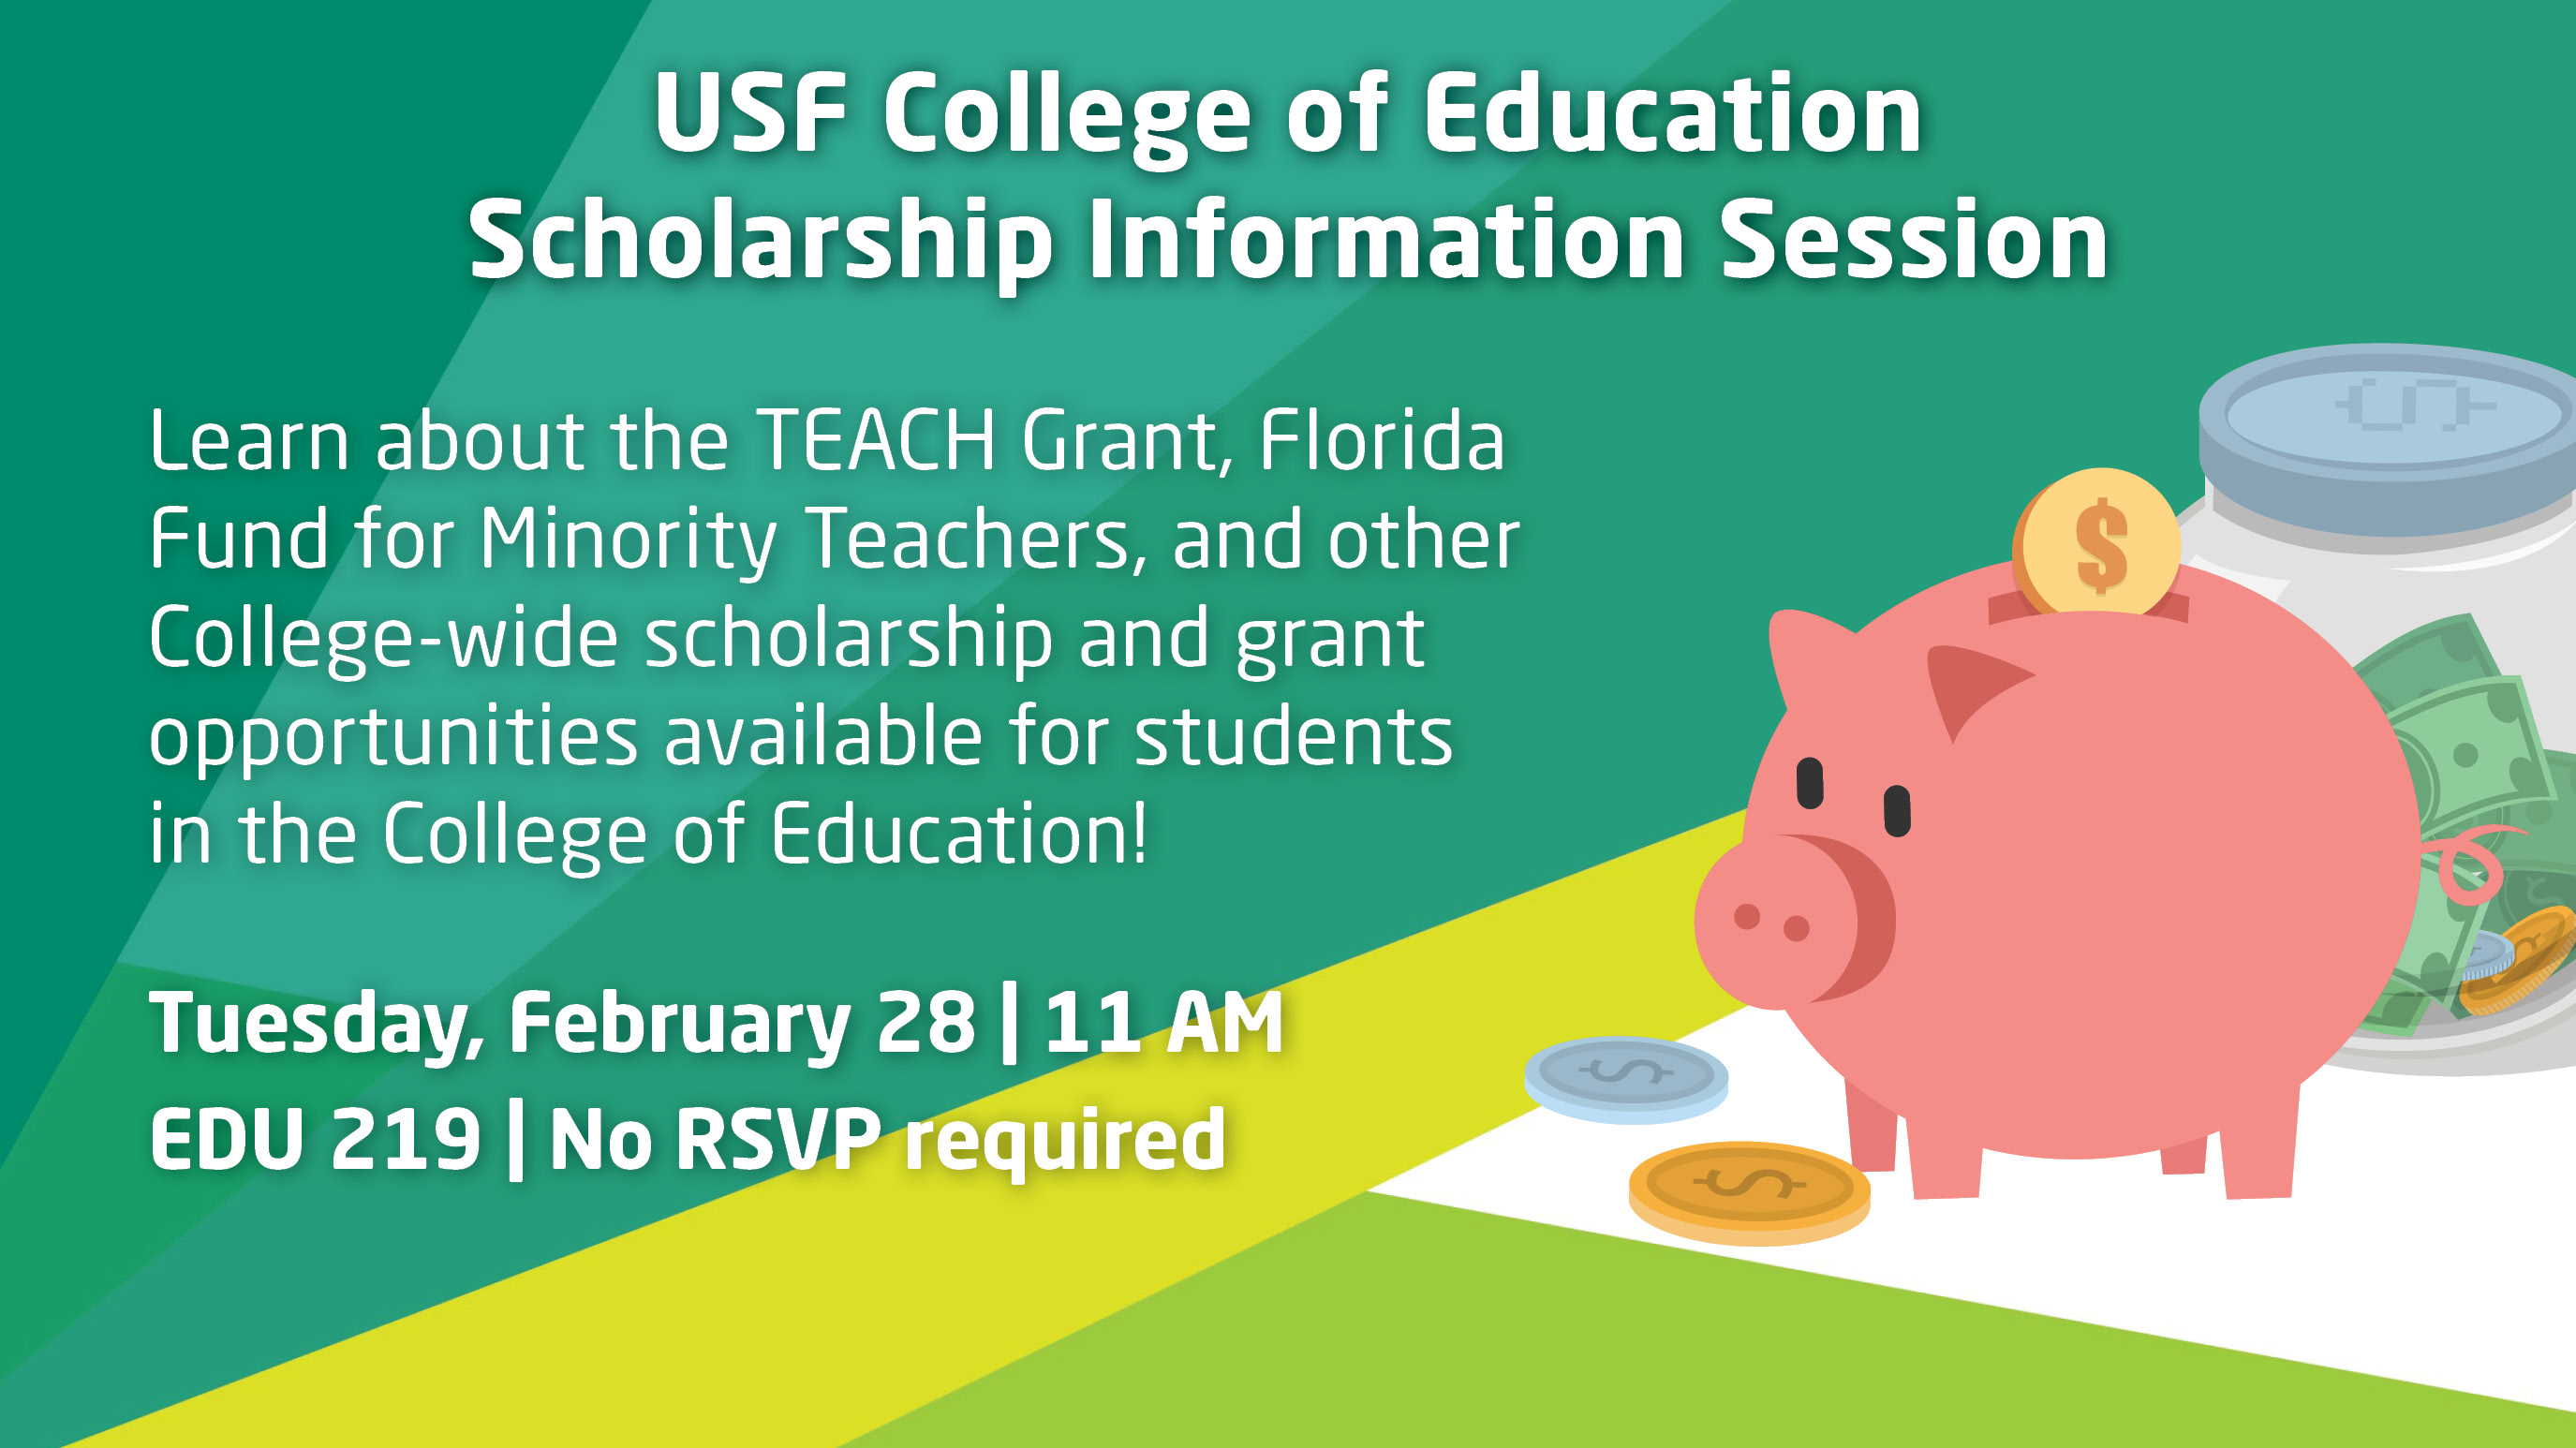 USF College of Education Scholarships Information Session